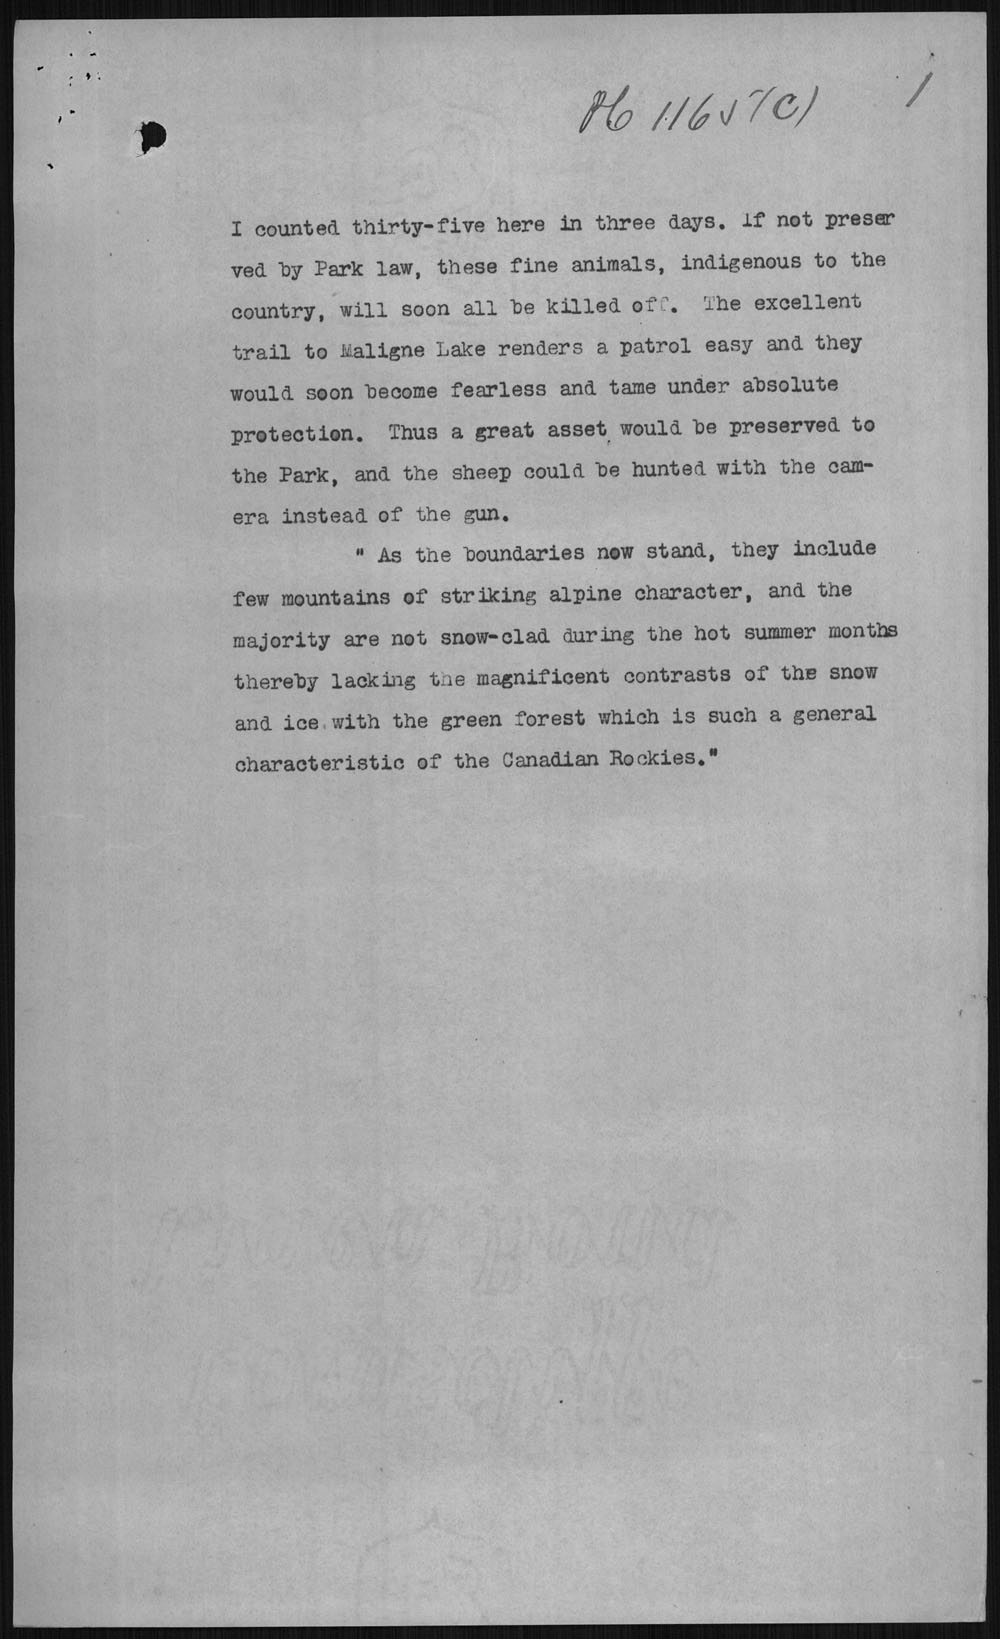 Digitized page of Orders in Council for Image No.: e010877250-v8